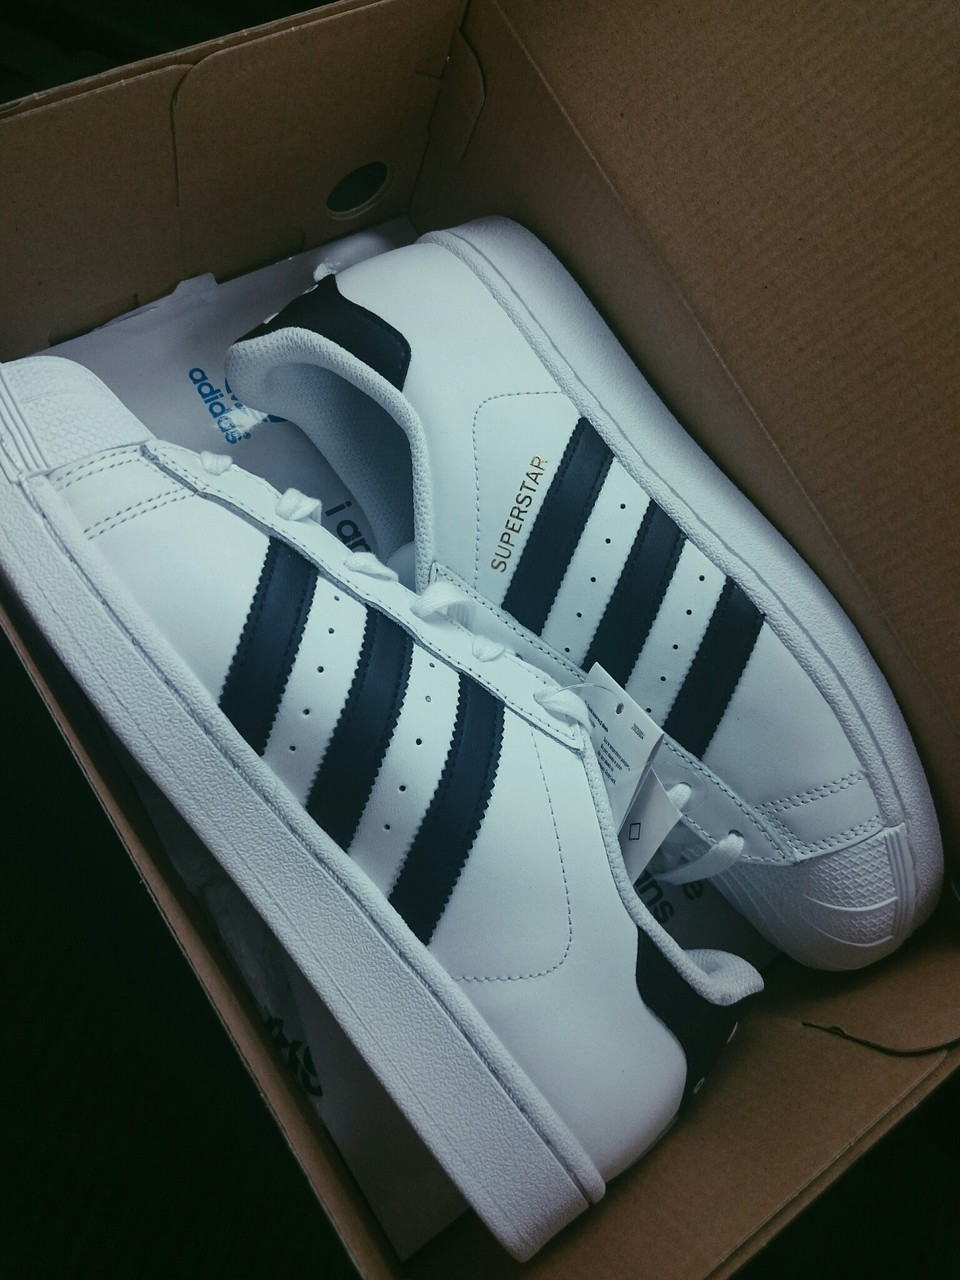 promo code 2aeee a2275 ADIDAS. Download image